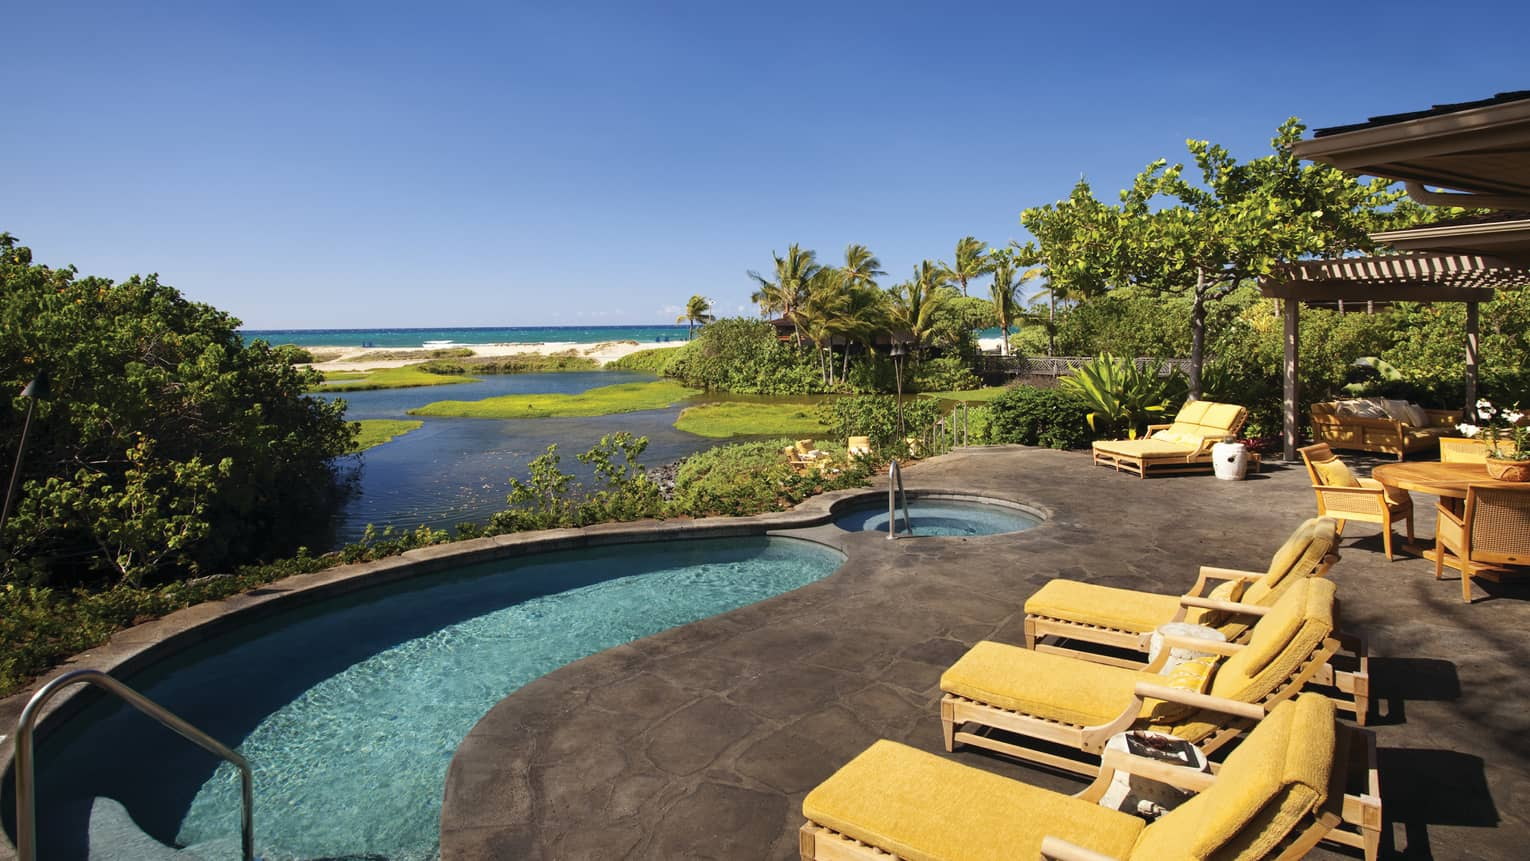 Makaloa Villa yellow patio chairs by curved plunge pool overlooking ocean, beach